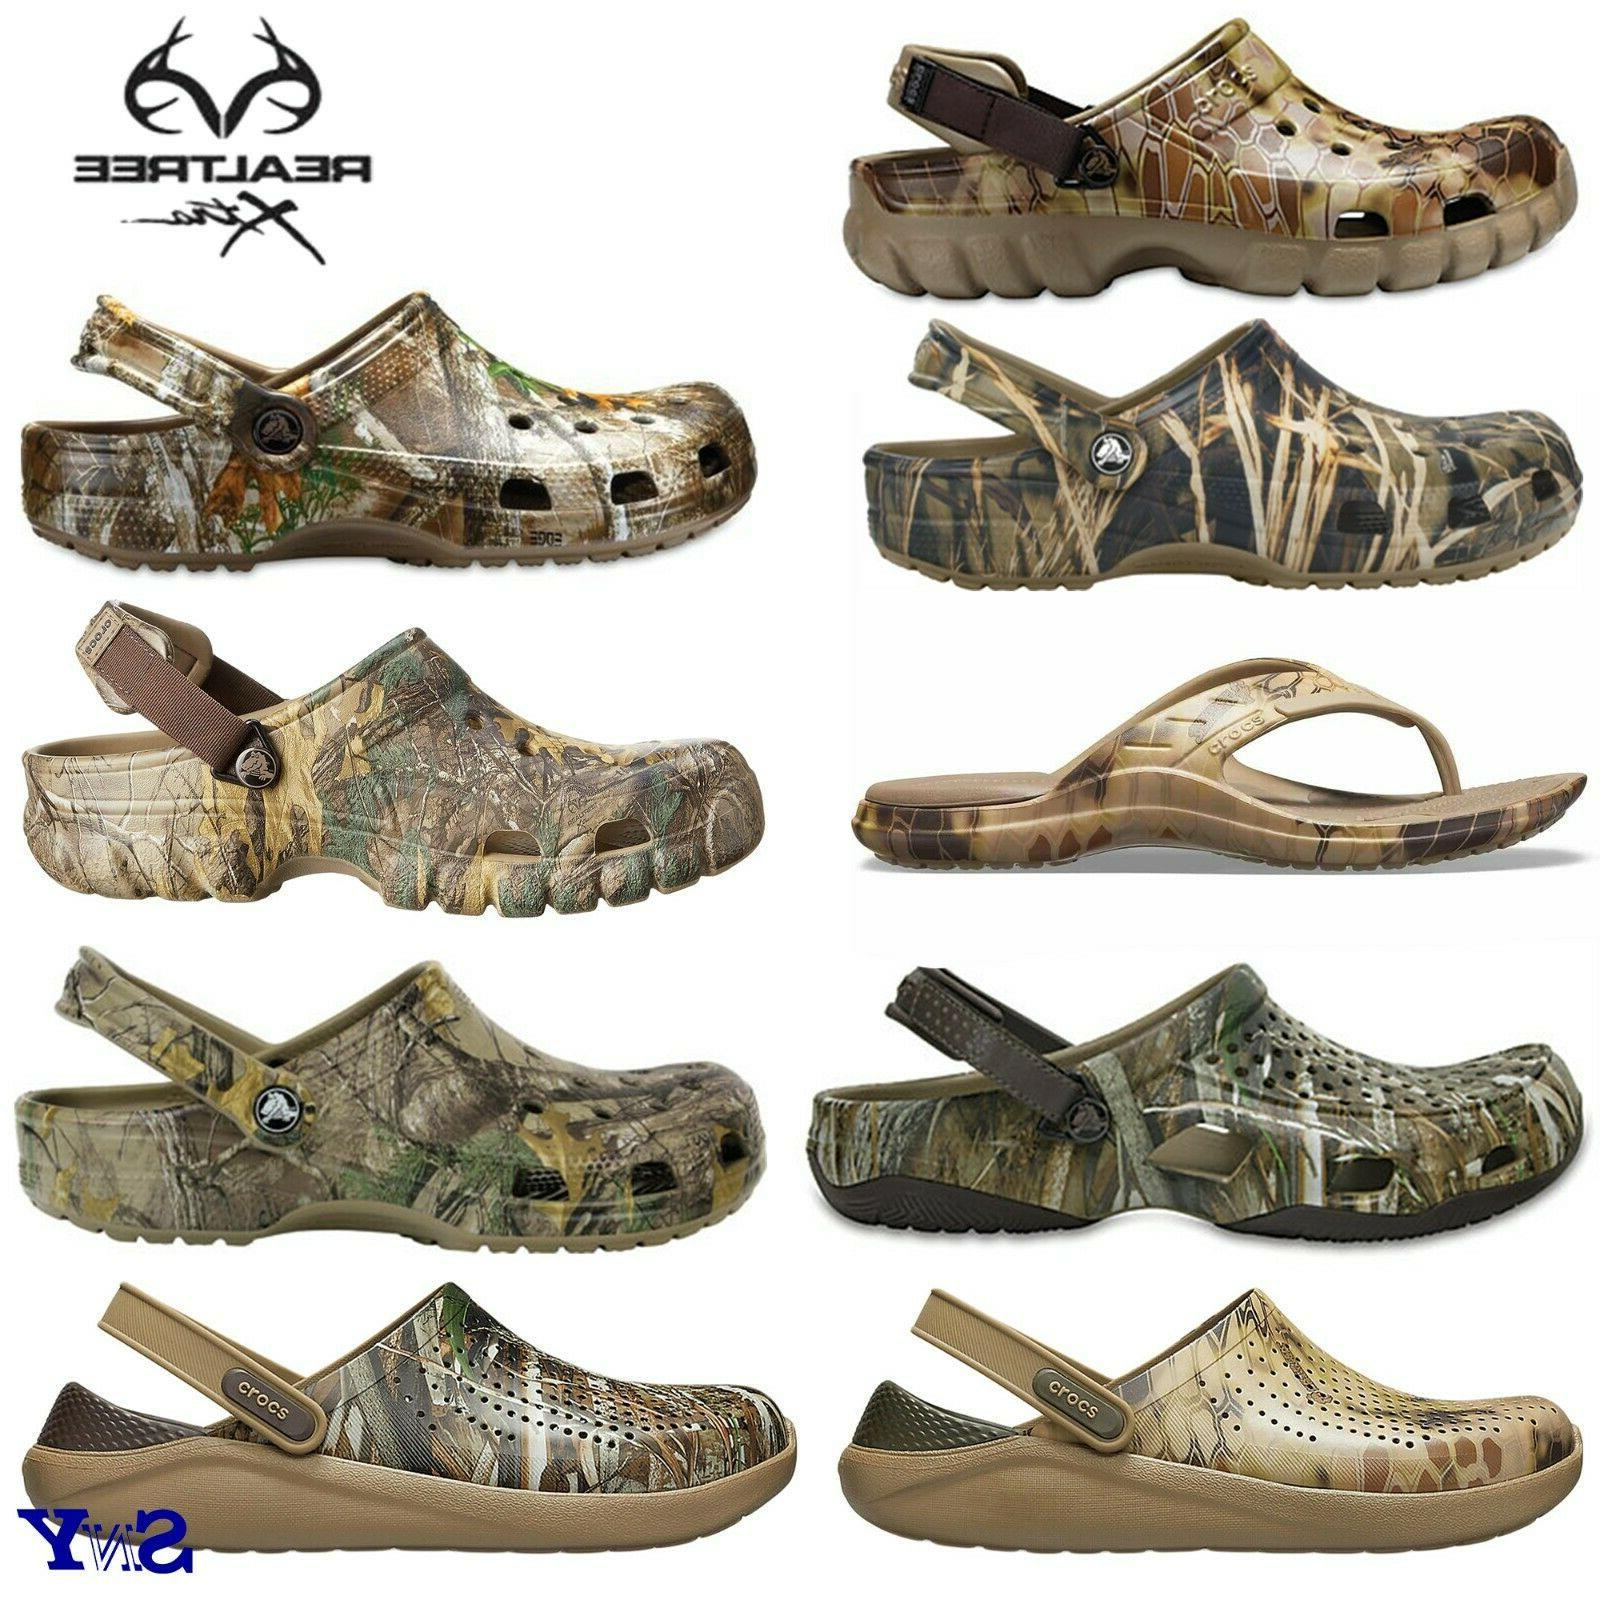 realtree camo clogs flip flops sandals shoes